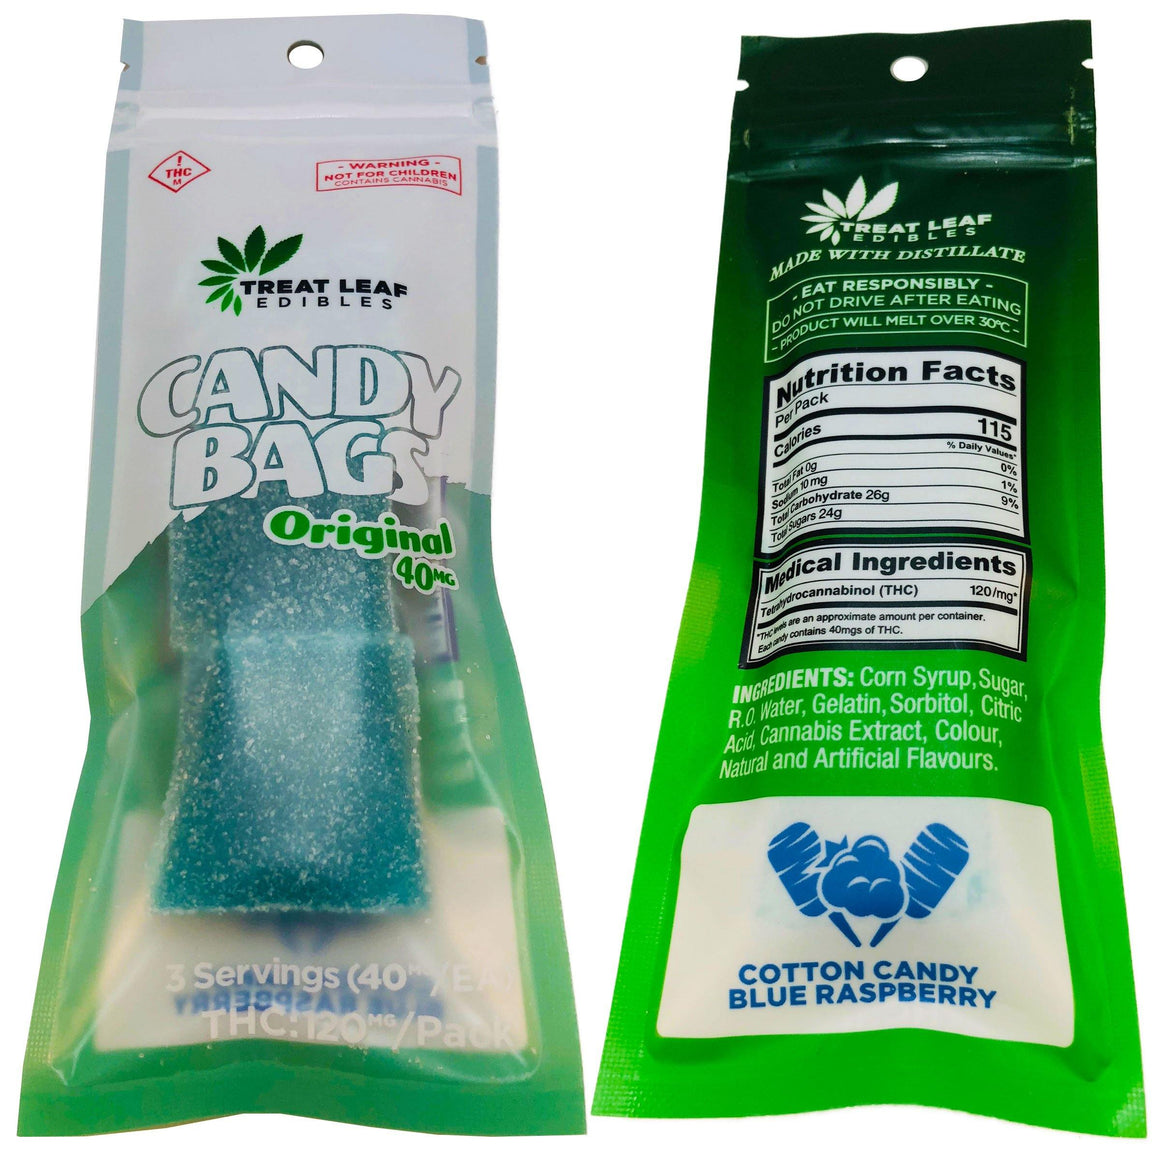 Treat Leaf Edibles Candy Bags Original 120mg THC 3 Pack Gummies